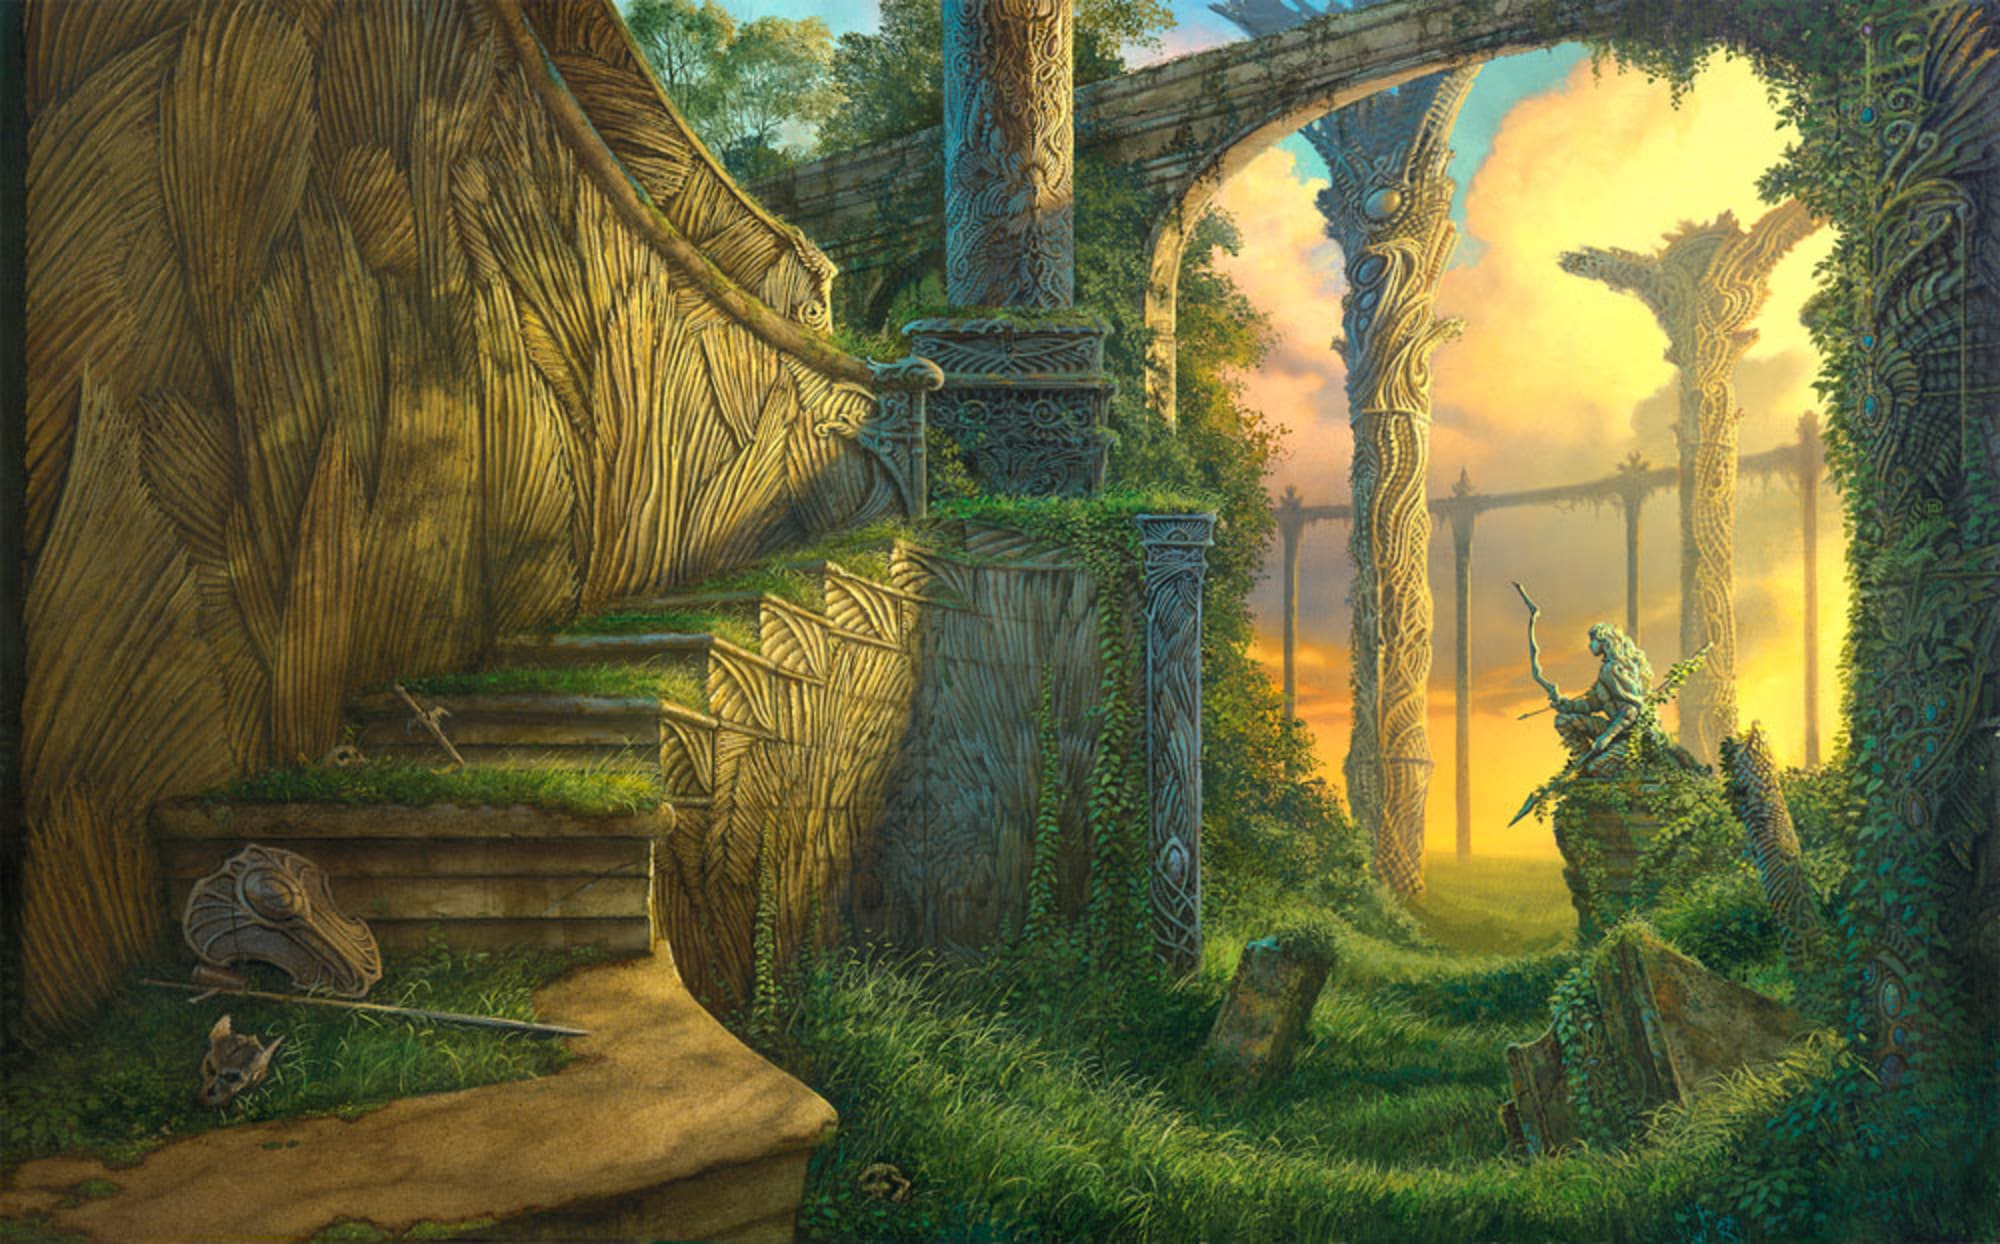 Tad Williams' new novel is the longest epic fantasy book ever…before editing